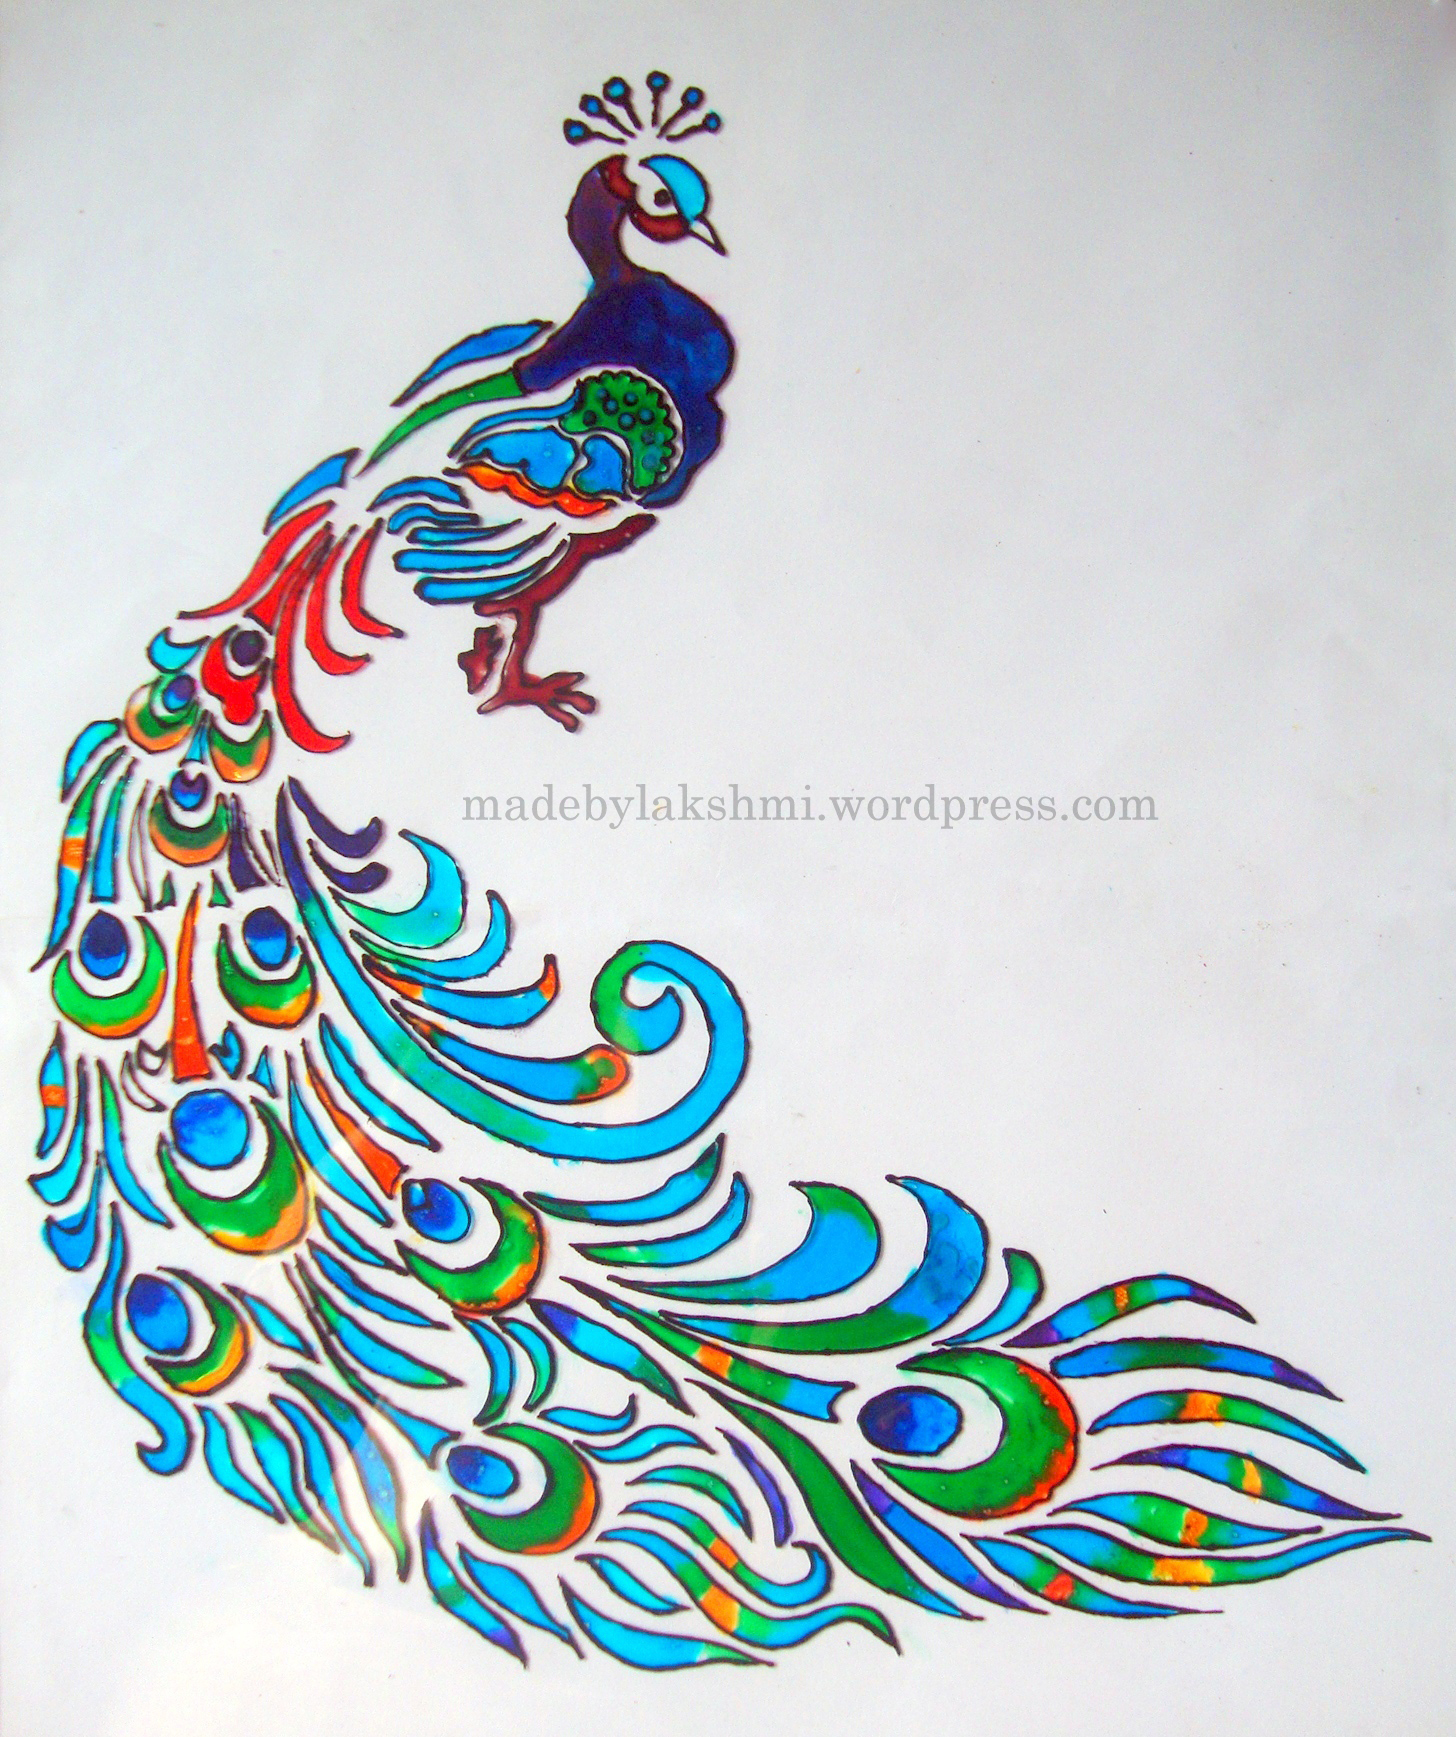 Glass painting tutorial m de by lakshmi for How to design a mural